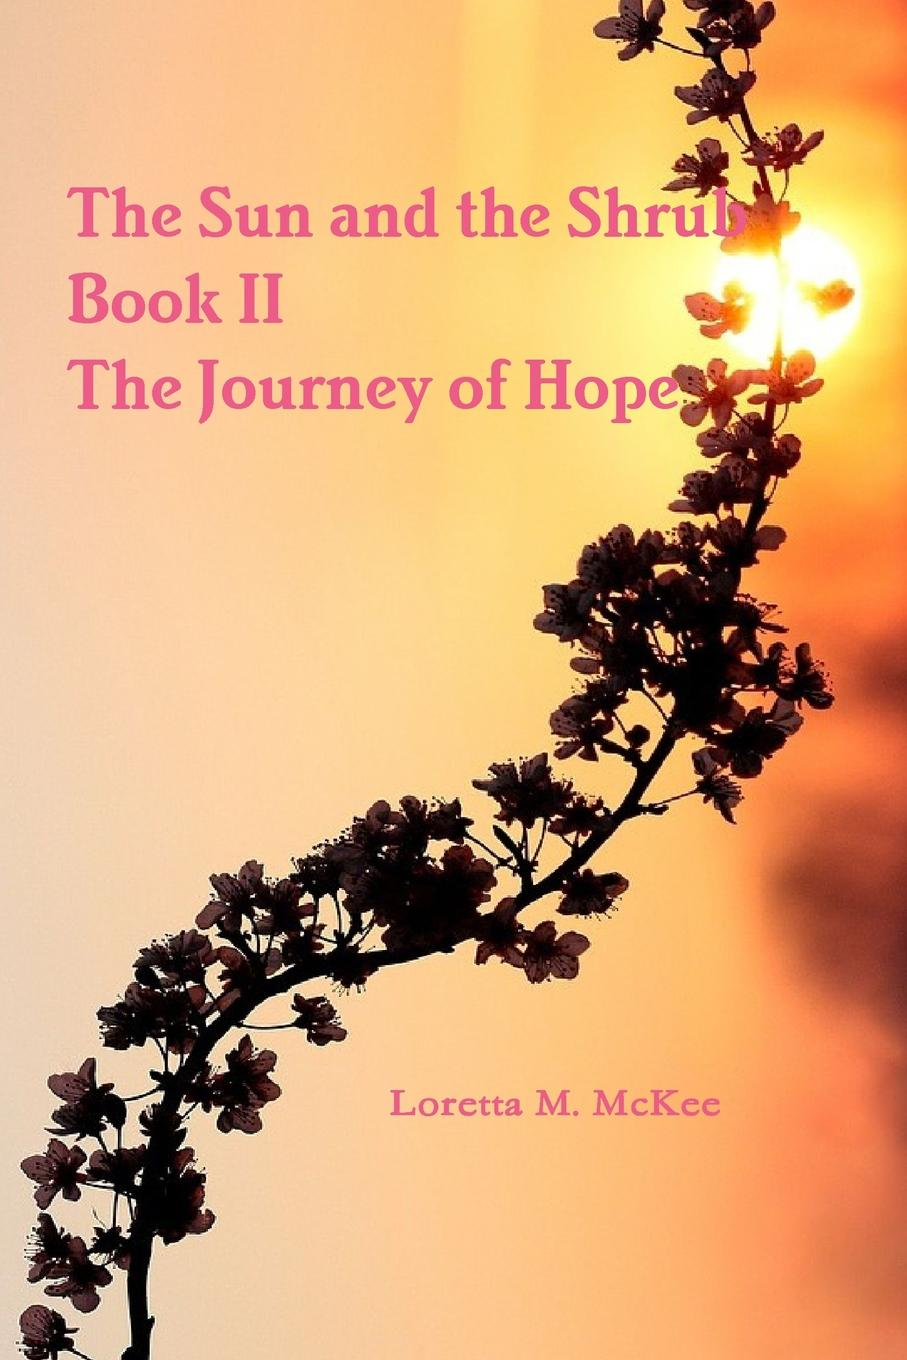 Loretta McKee The Sun and the Shrub - Book 2. The Journey of Hope allie pleiter mission of hope